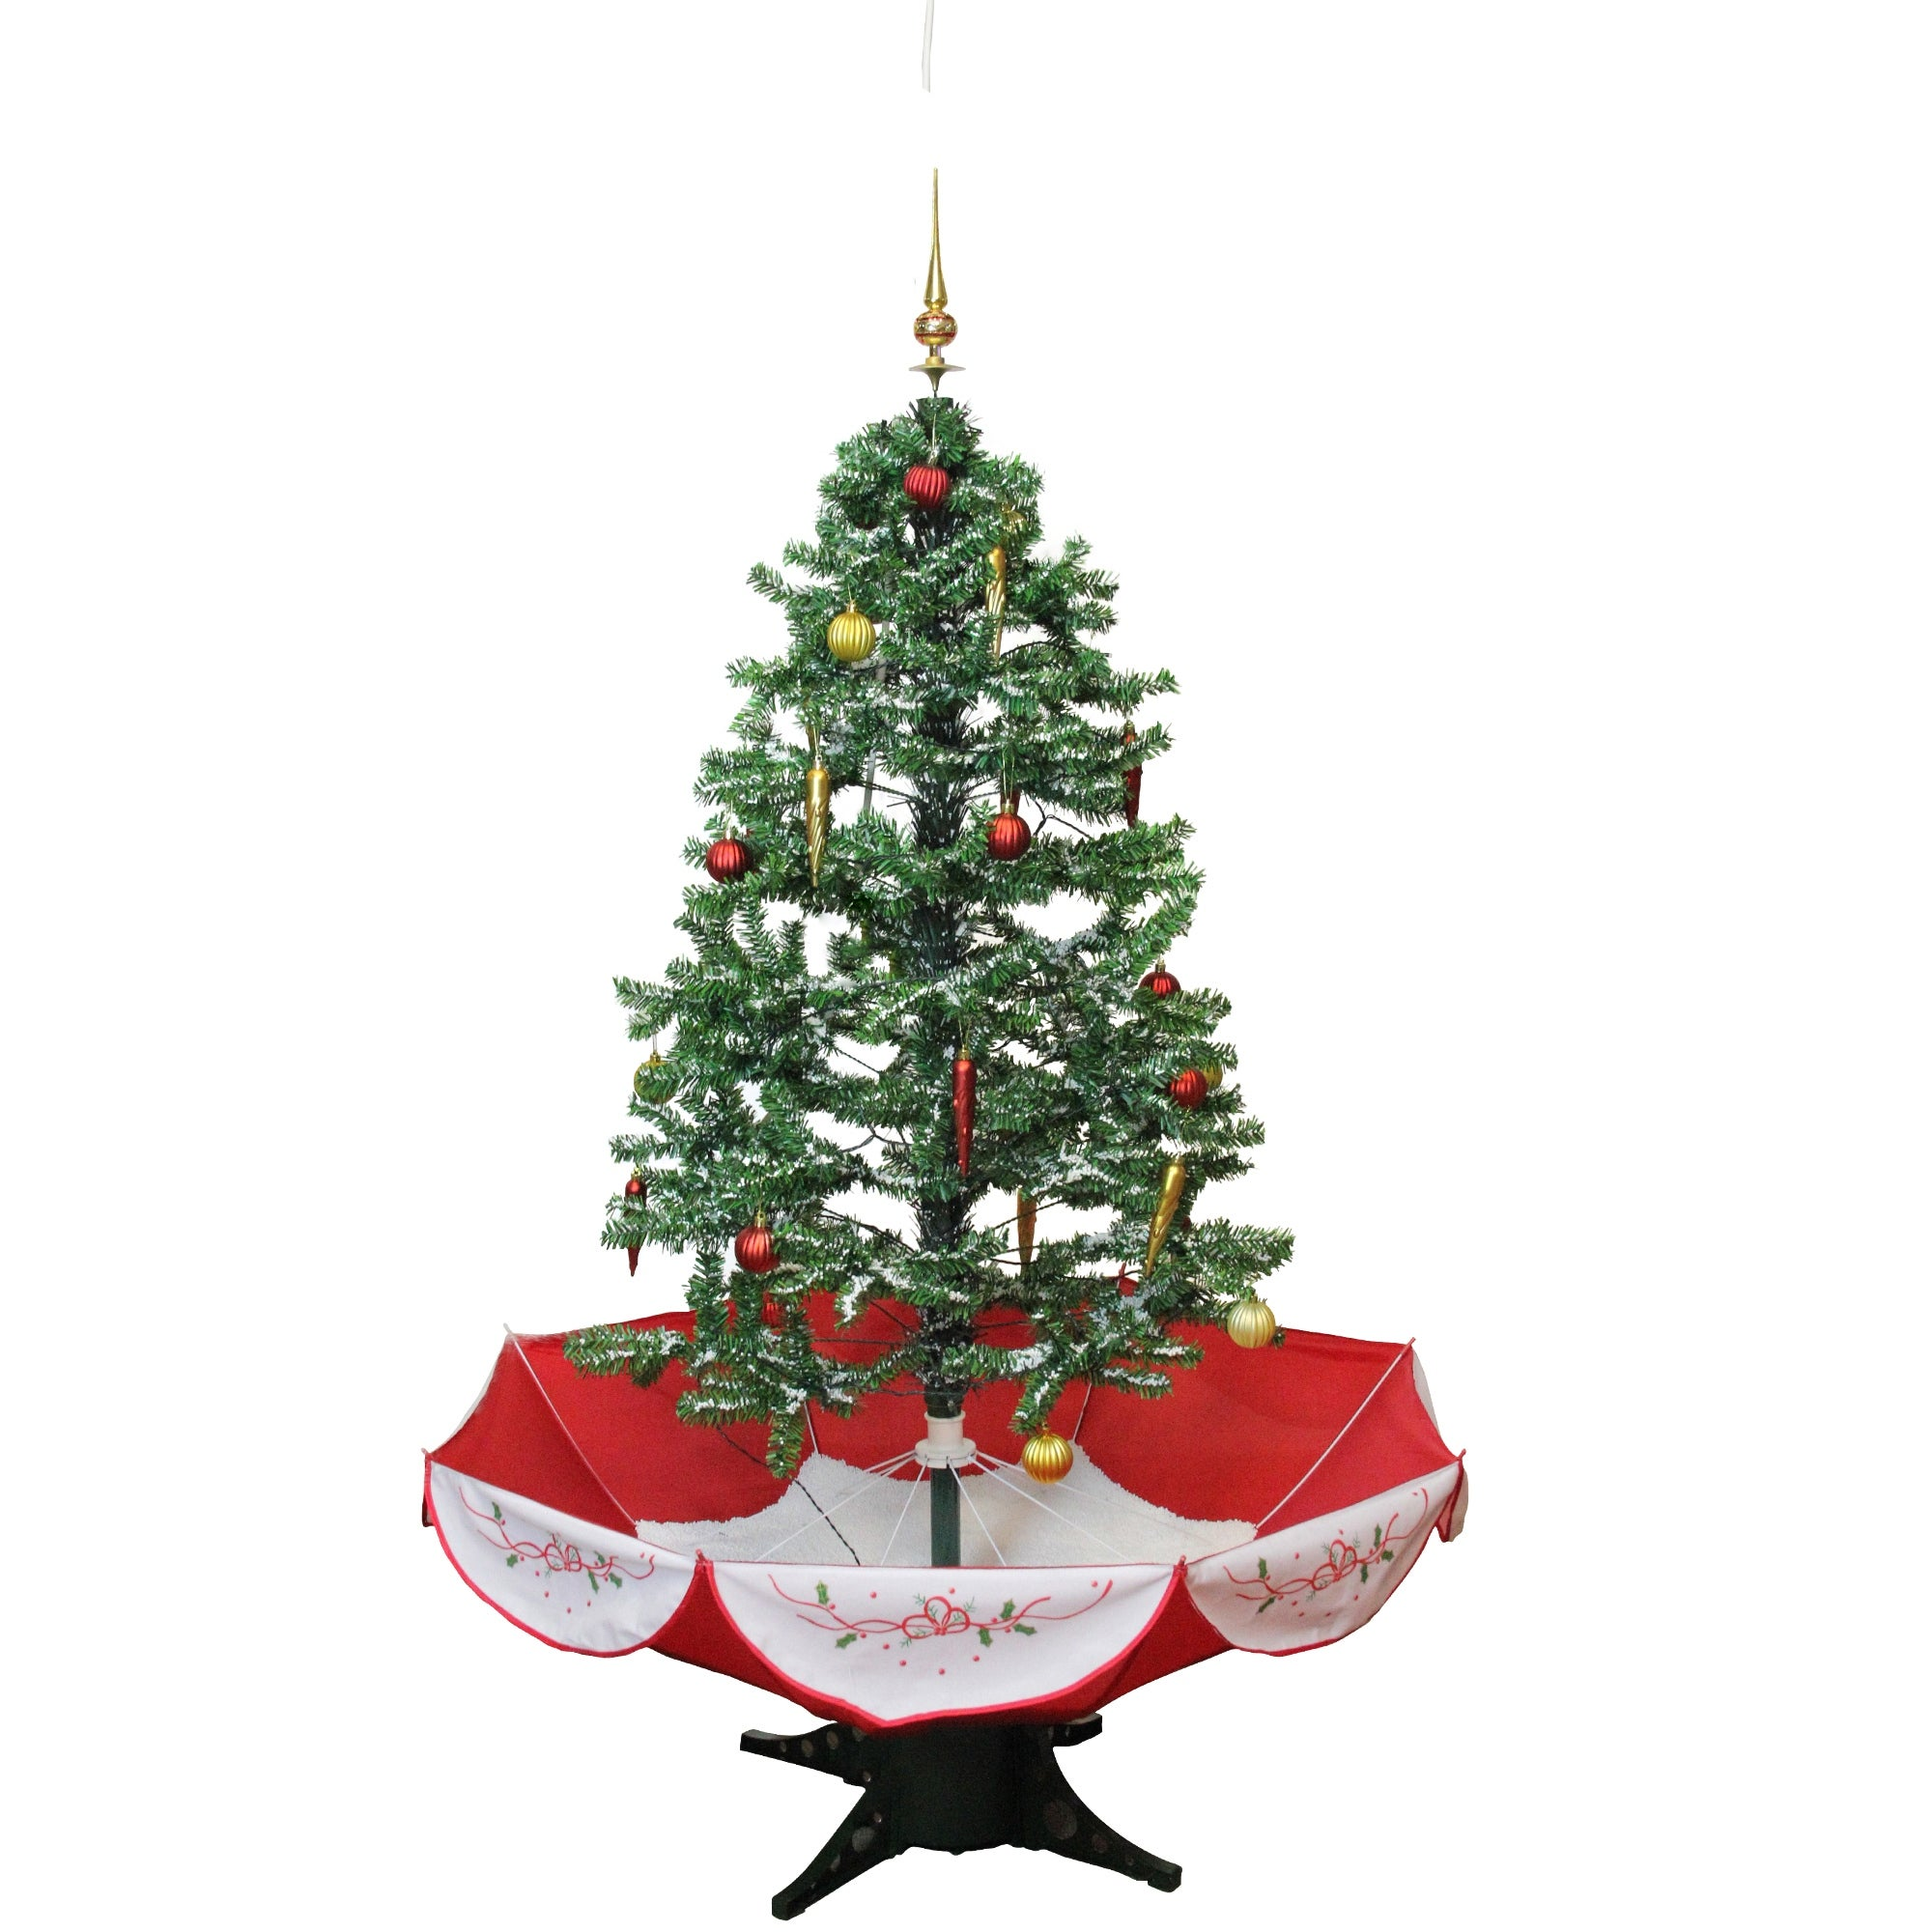 4 5 Pre Lit Musical Snowing Artificial Christmas Tree With Umbrella Base Blue Led Lights 4 5 Foot